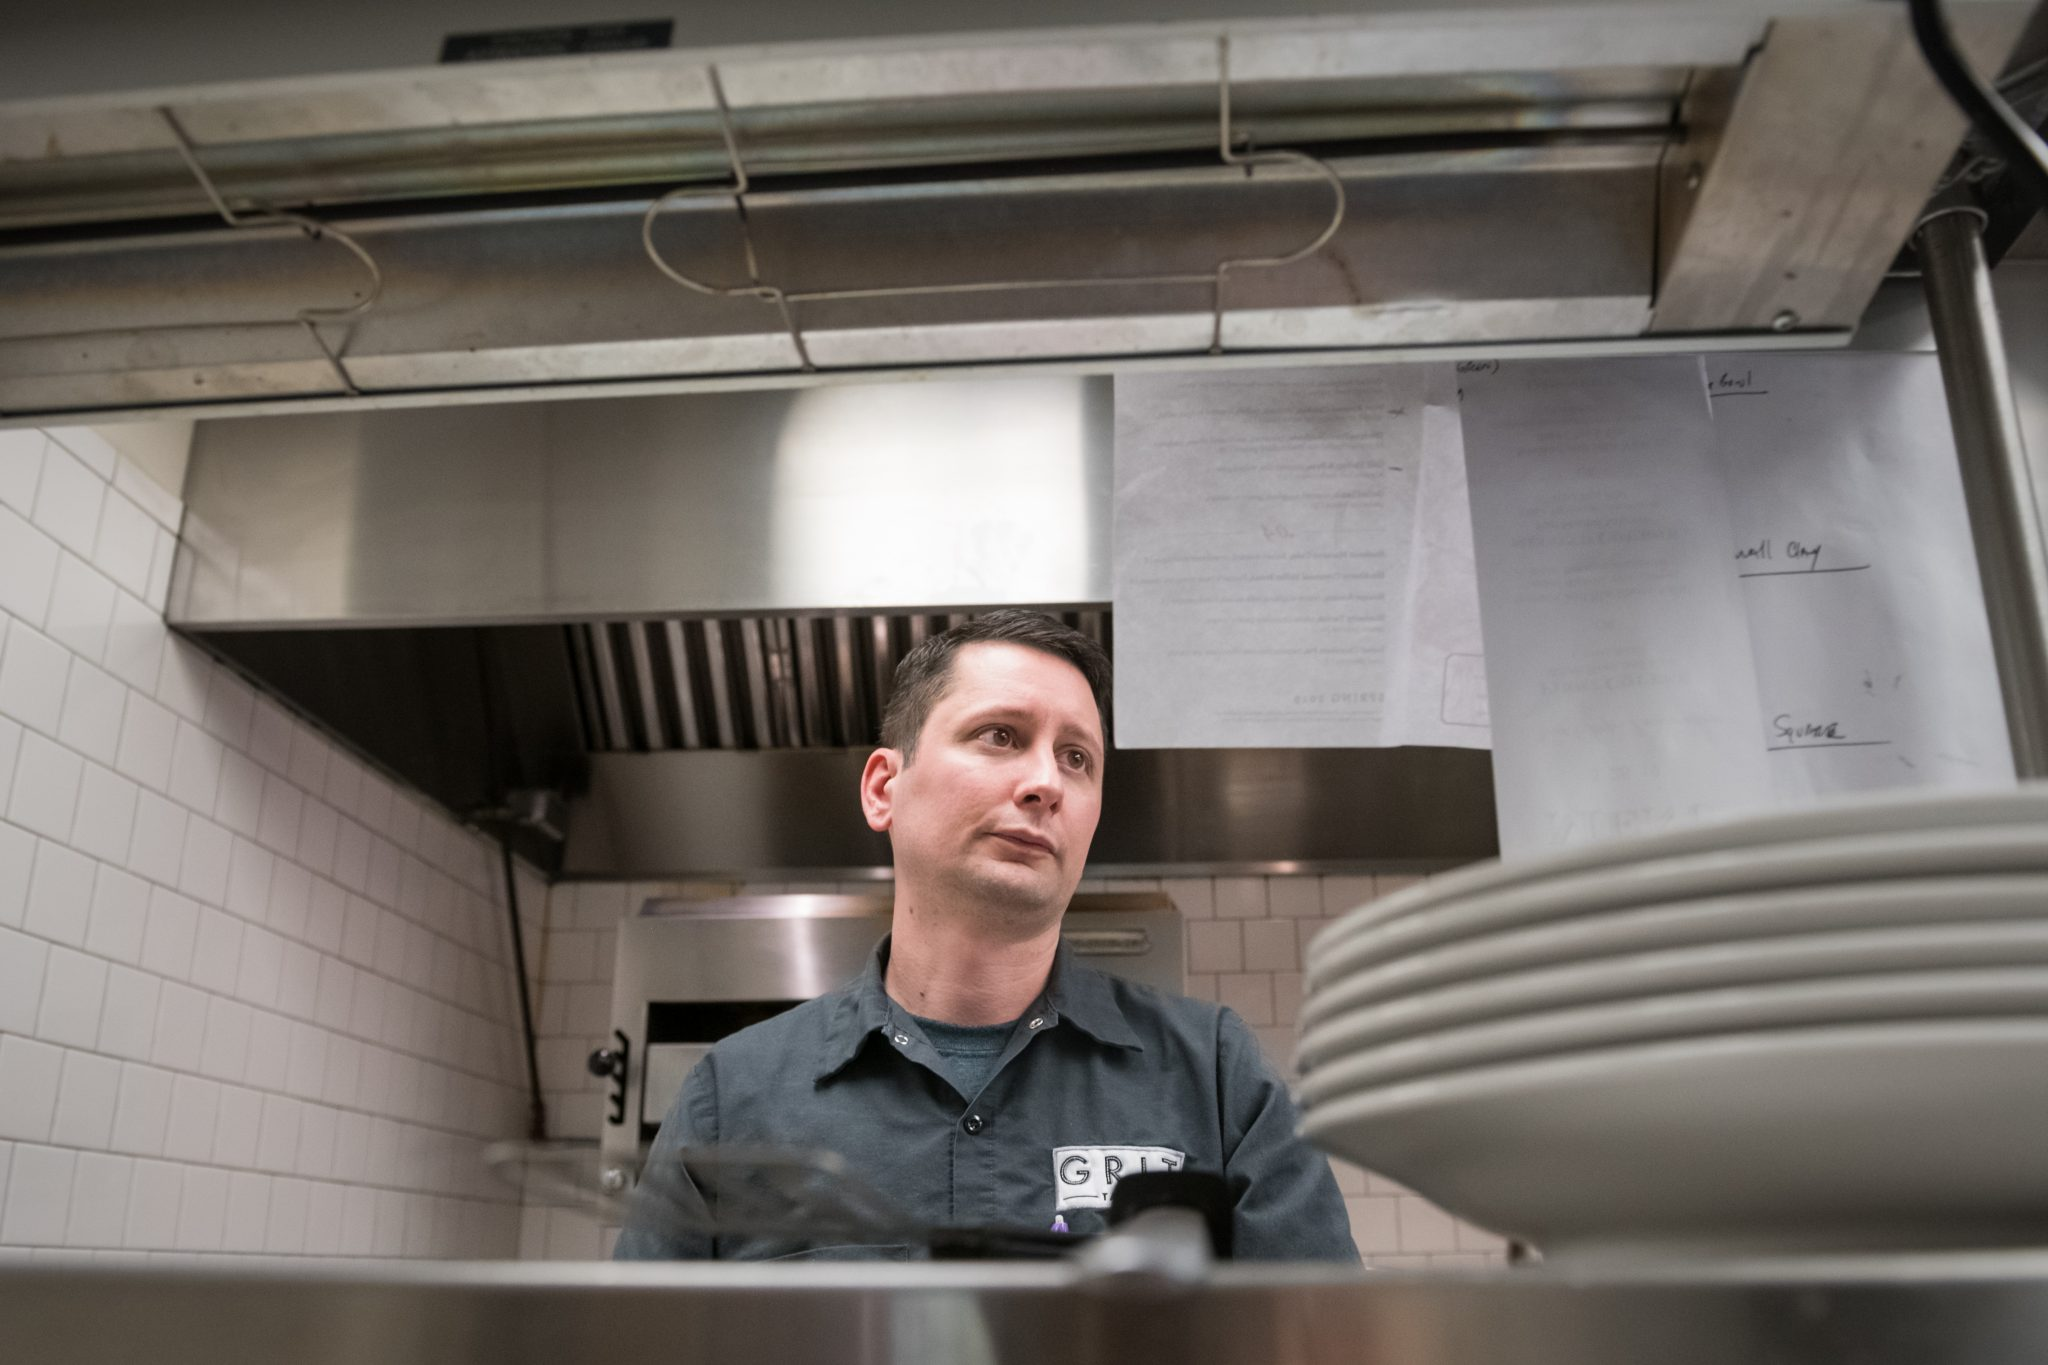 Eric Peters works the line at Grit restaurant in Taylor. The University of Mississippi student, who battled alcohol addiction during his career as an executive chef, has been sober for years and is working on his degree. Photo by Megan Wolfe/Ole Miss Digital Imaging Services